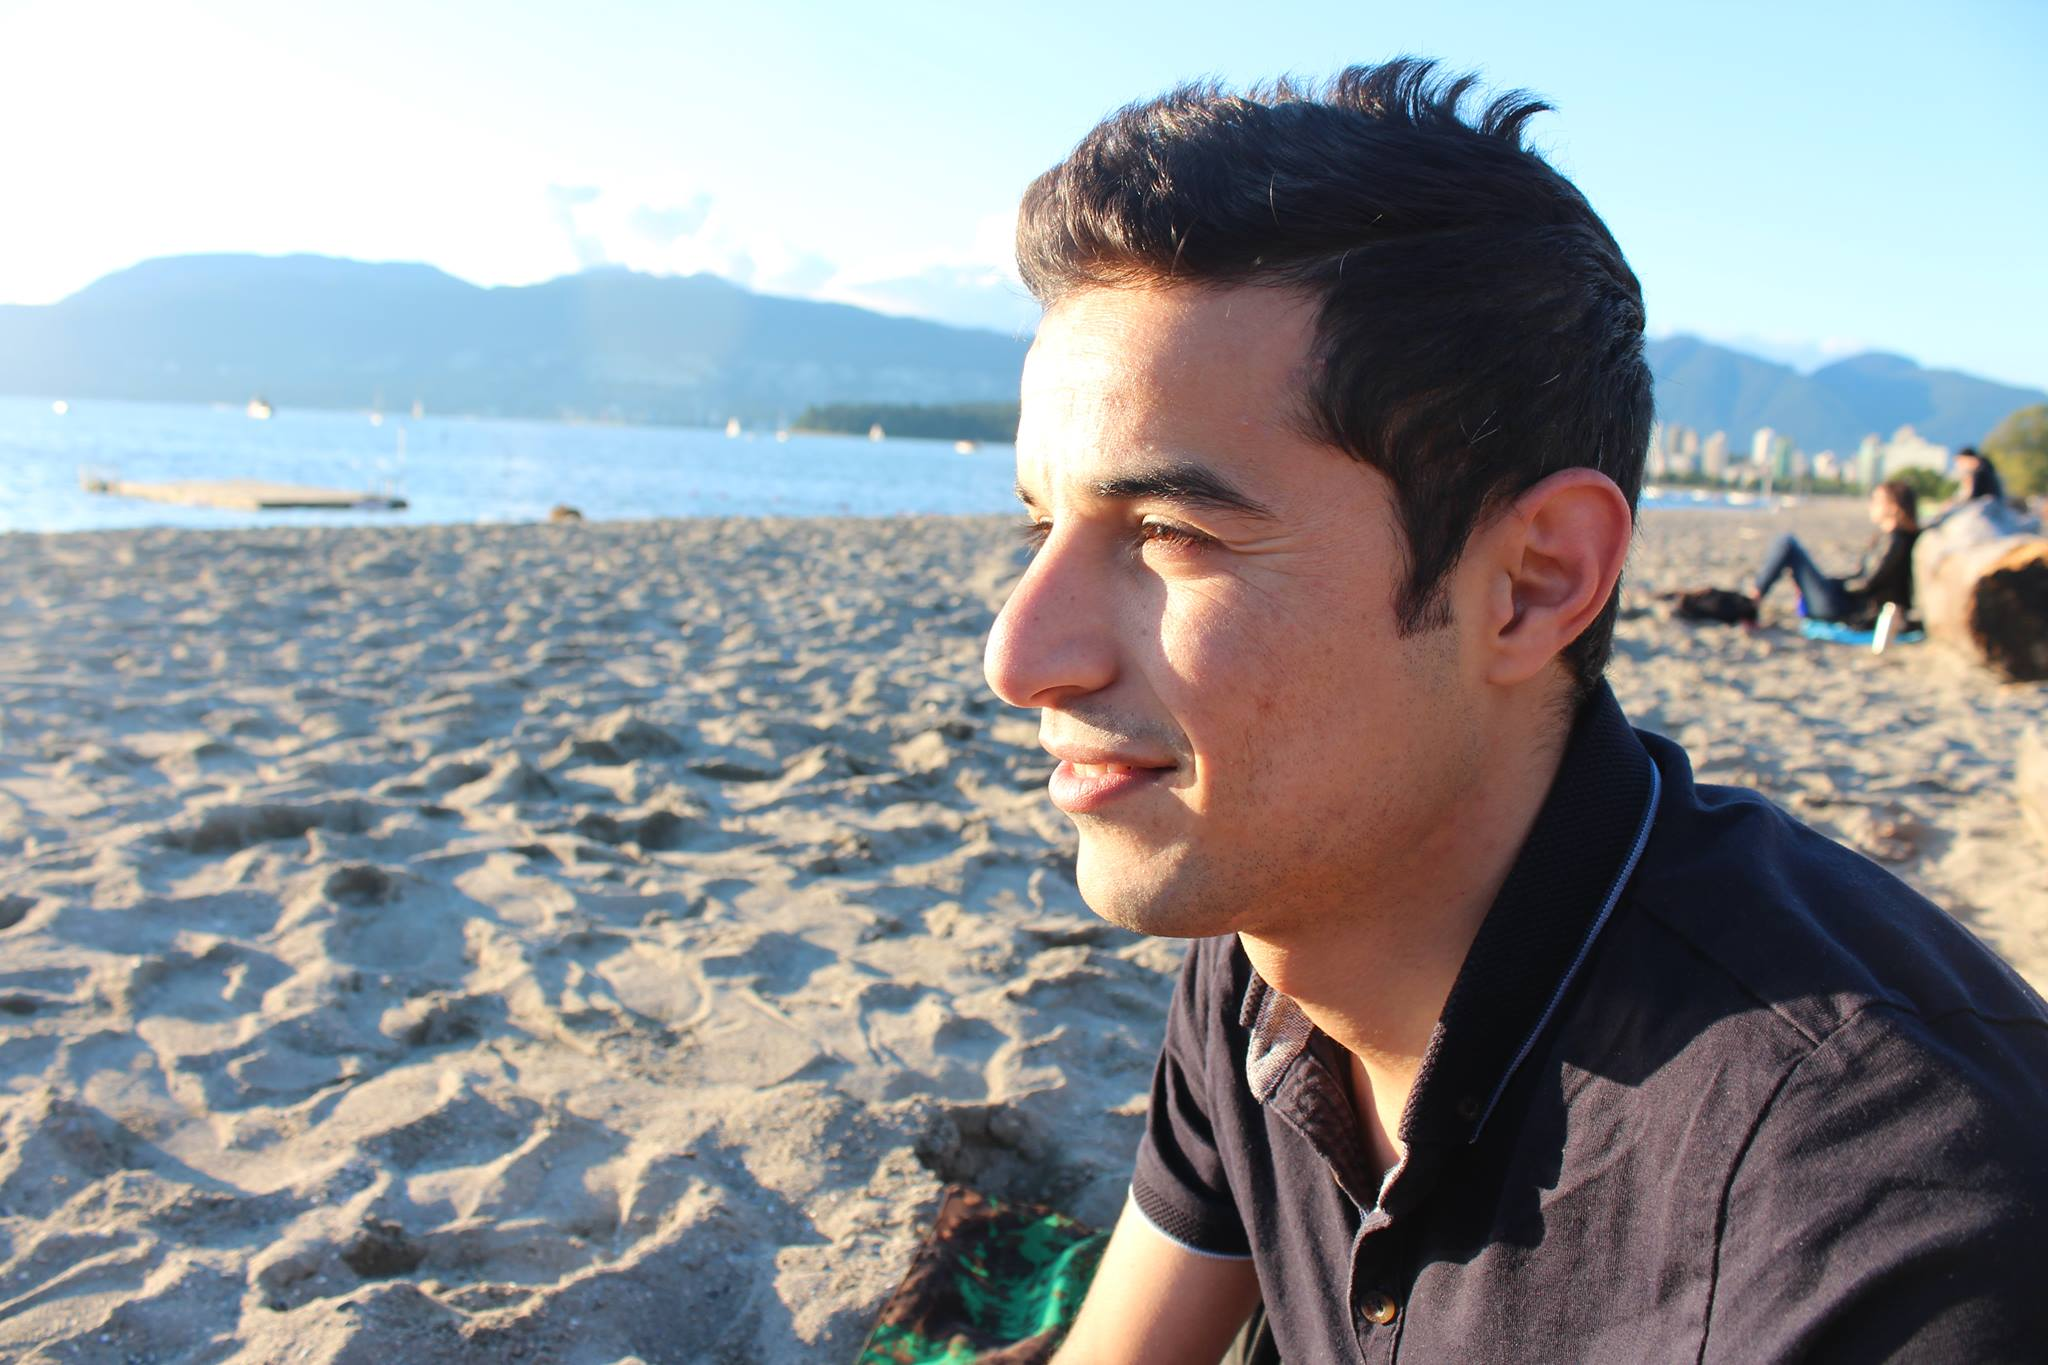 Mohammed Alsaleh, who came to Canada as a refugee from Syria, in Vancouver (PeaceGeeks)